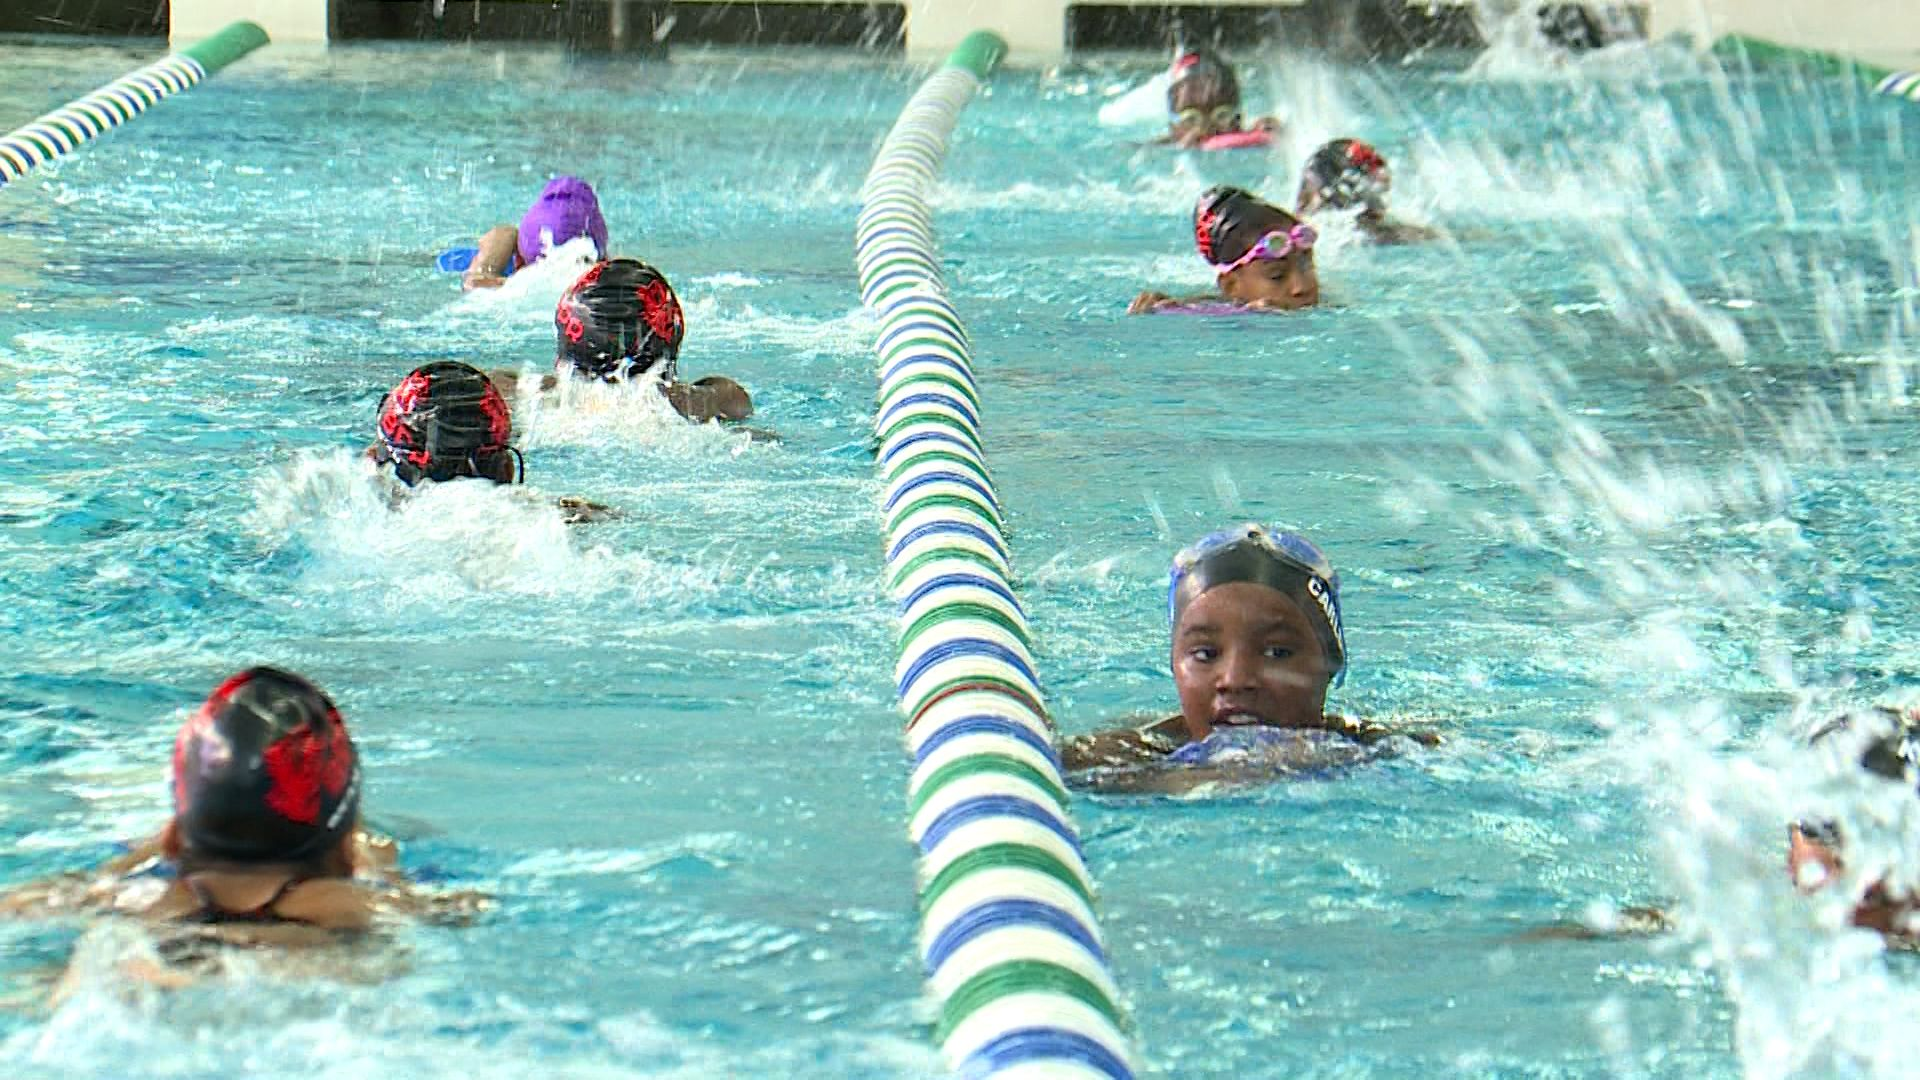 Summer Olympics inspires Birmingham's youth swimmers